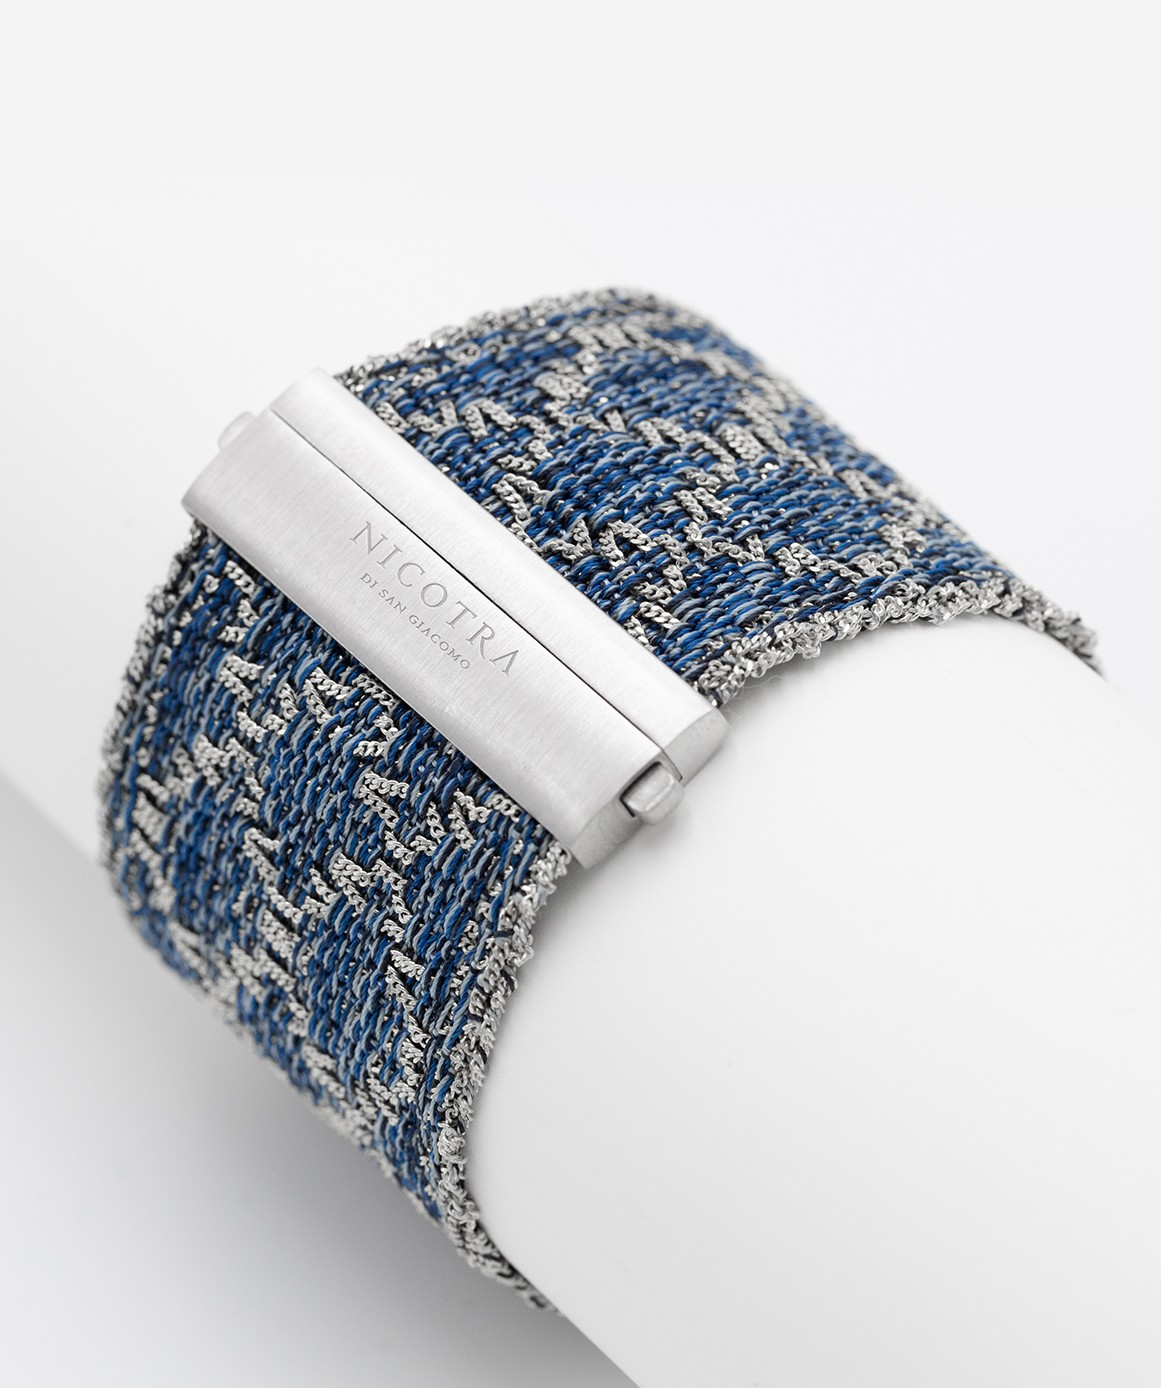 RHOMBUS Bracelet in Sterling Silver Rhodium plated. Fabric: Silk Jeans